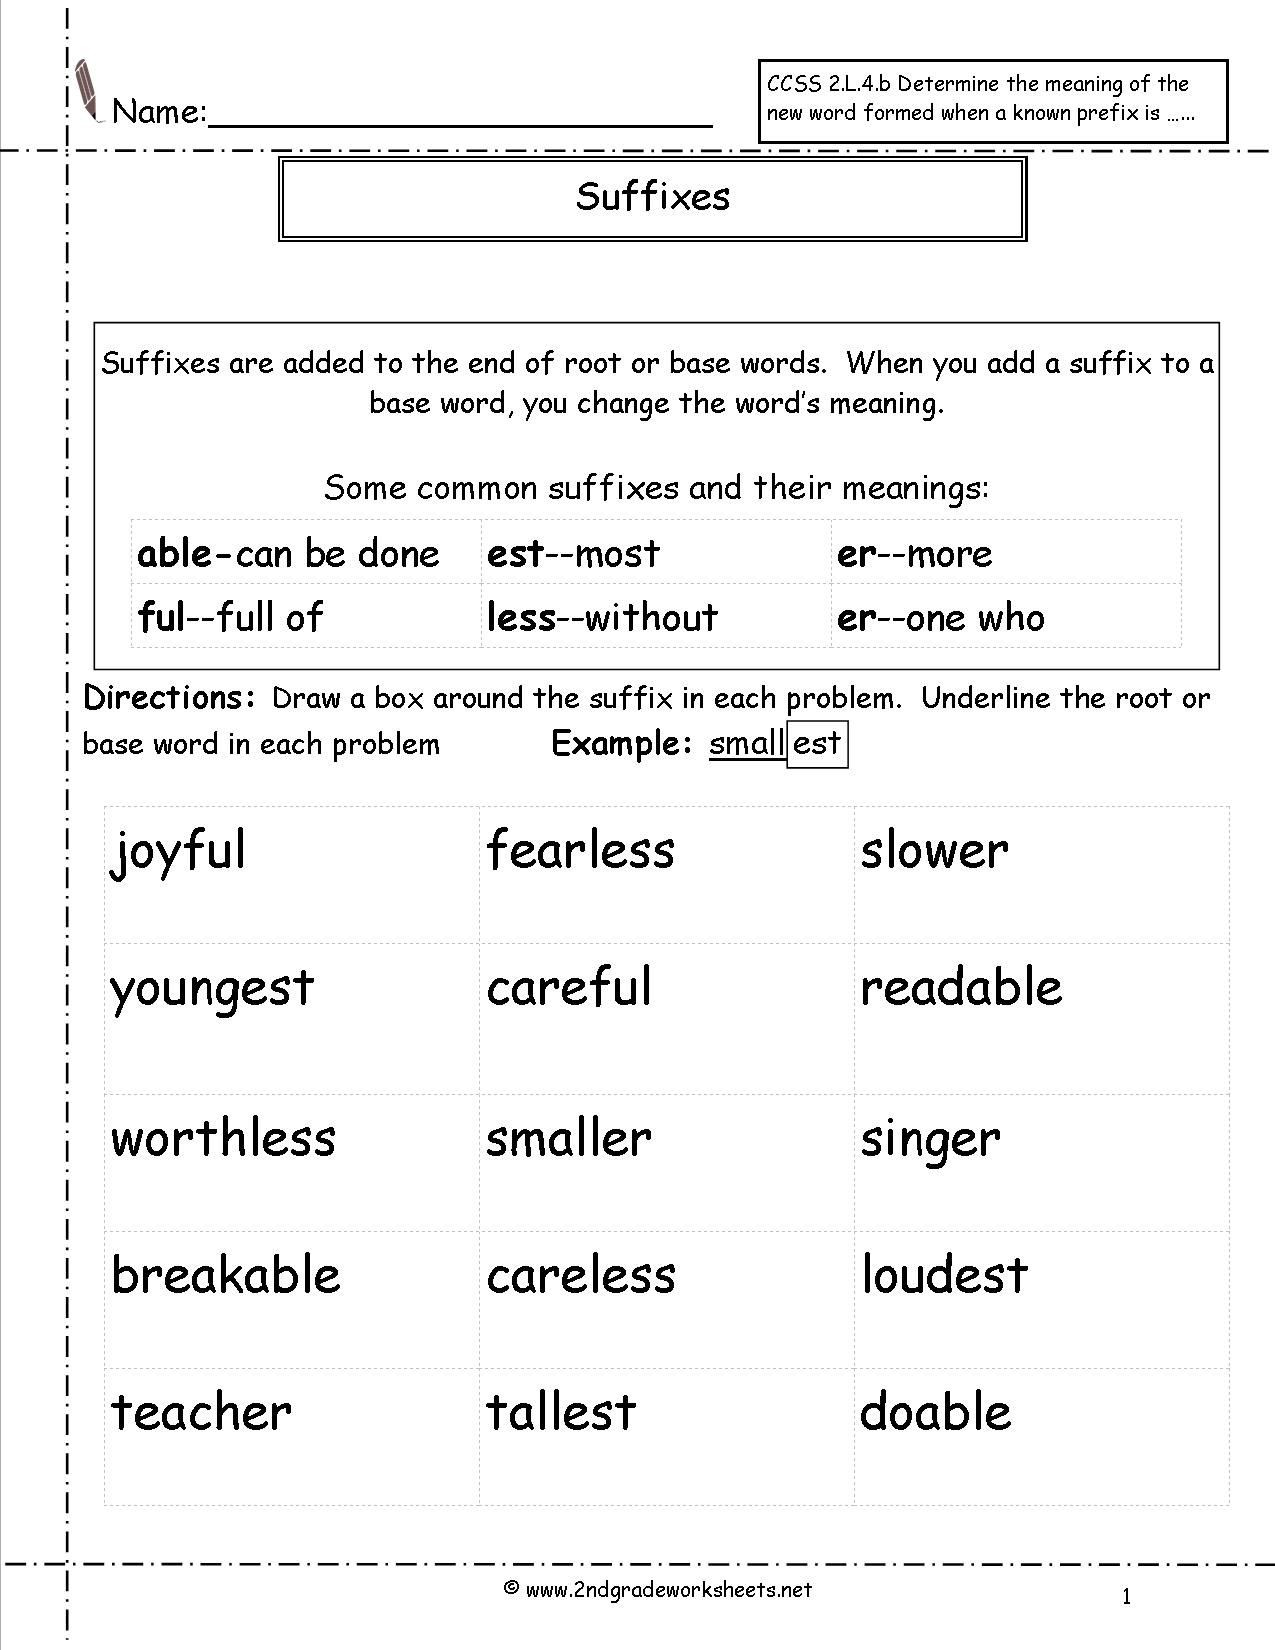 Suffix Worksheets 4th Grade 41 Innovative Prefix Worksheets for You